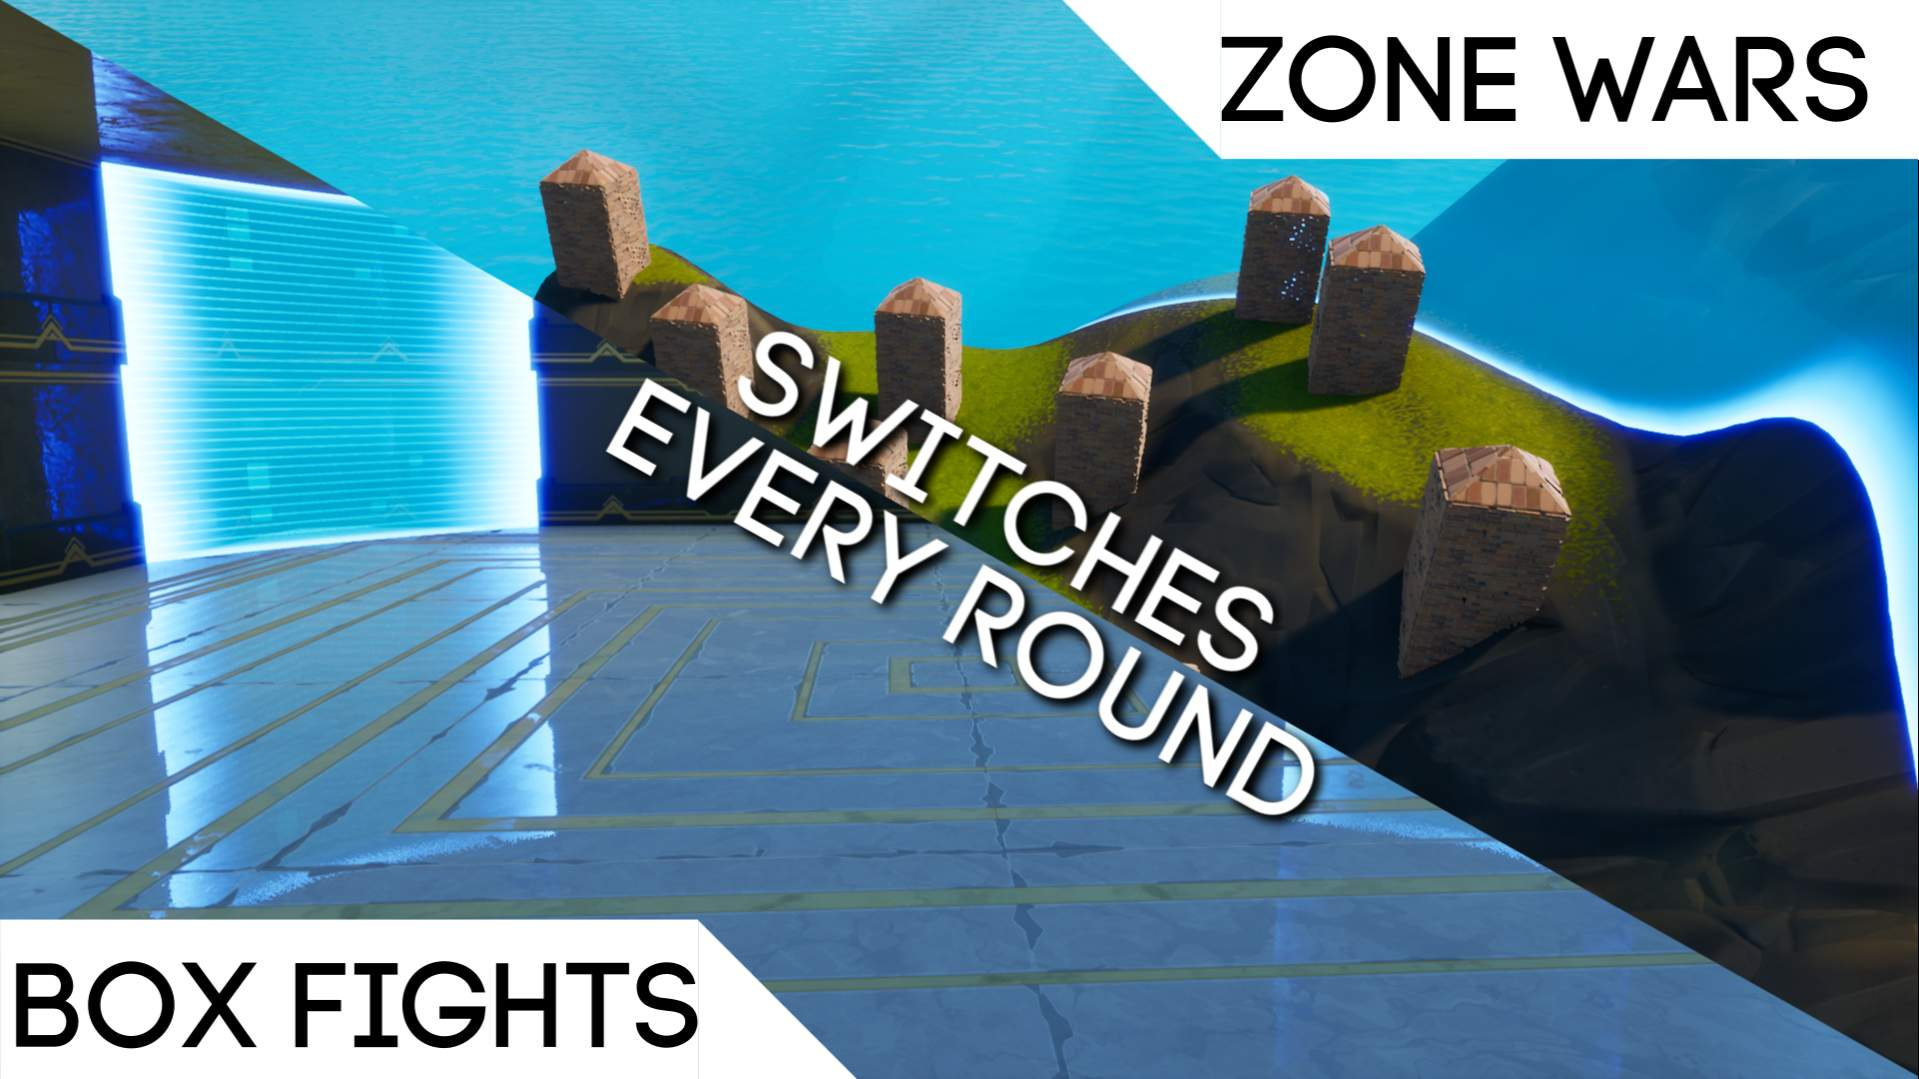 BOX FIGHTS & ZONE WARS W ARENA SCORING